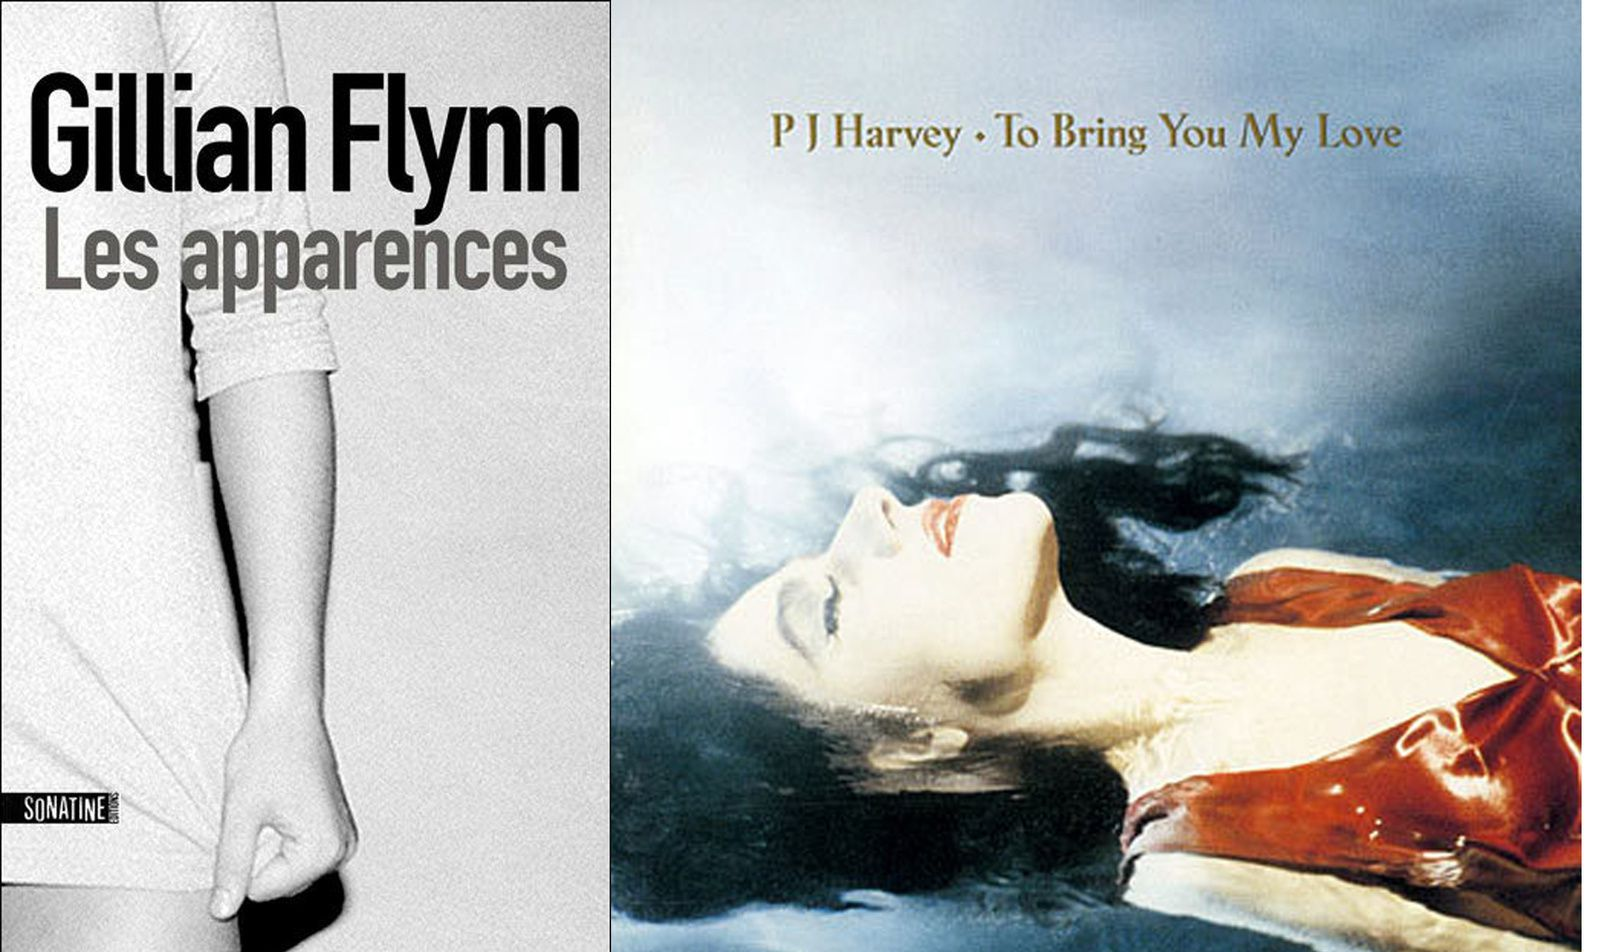 &quot&#x3B;Les apparences&quot&#x3B; de Gillian Flynn / PJ Harvey &quot&#x3B;To bring you my love&quot&#x3B;